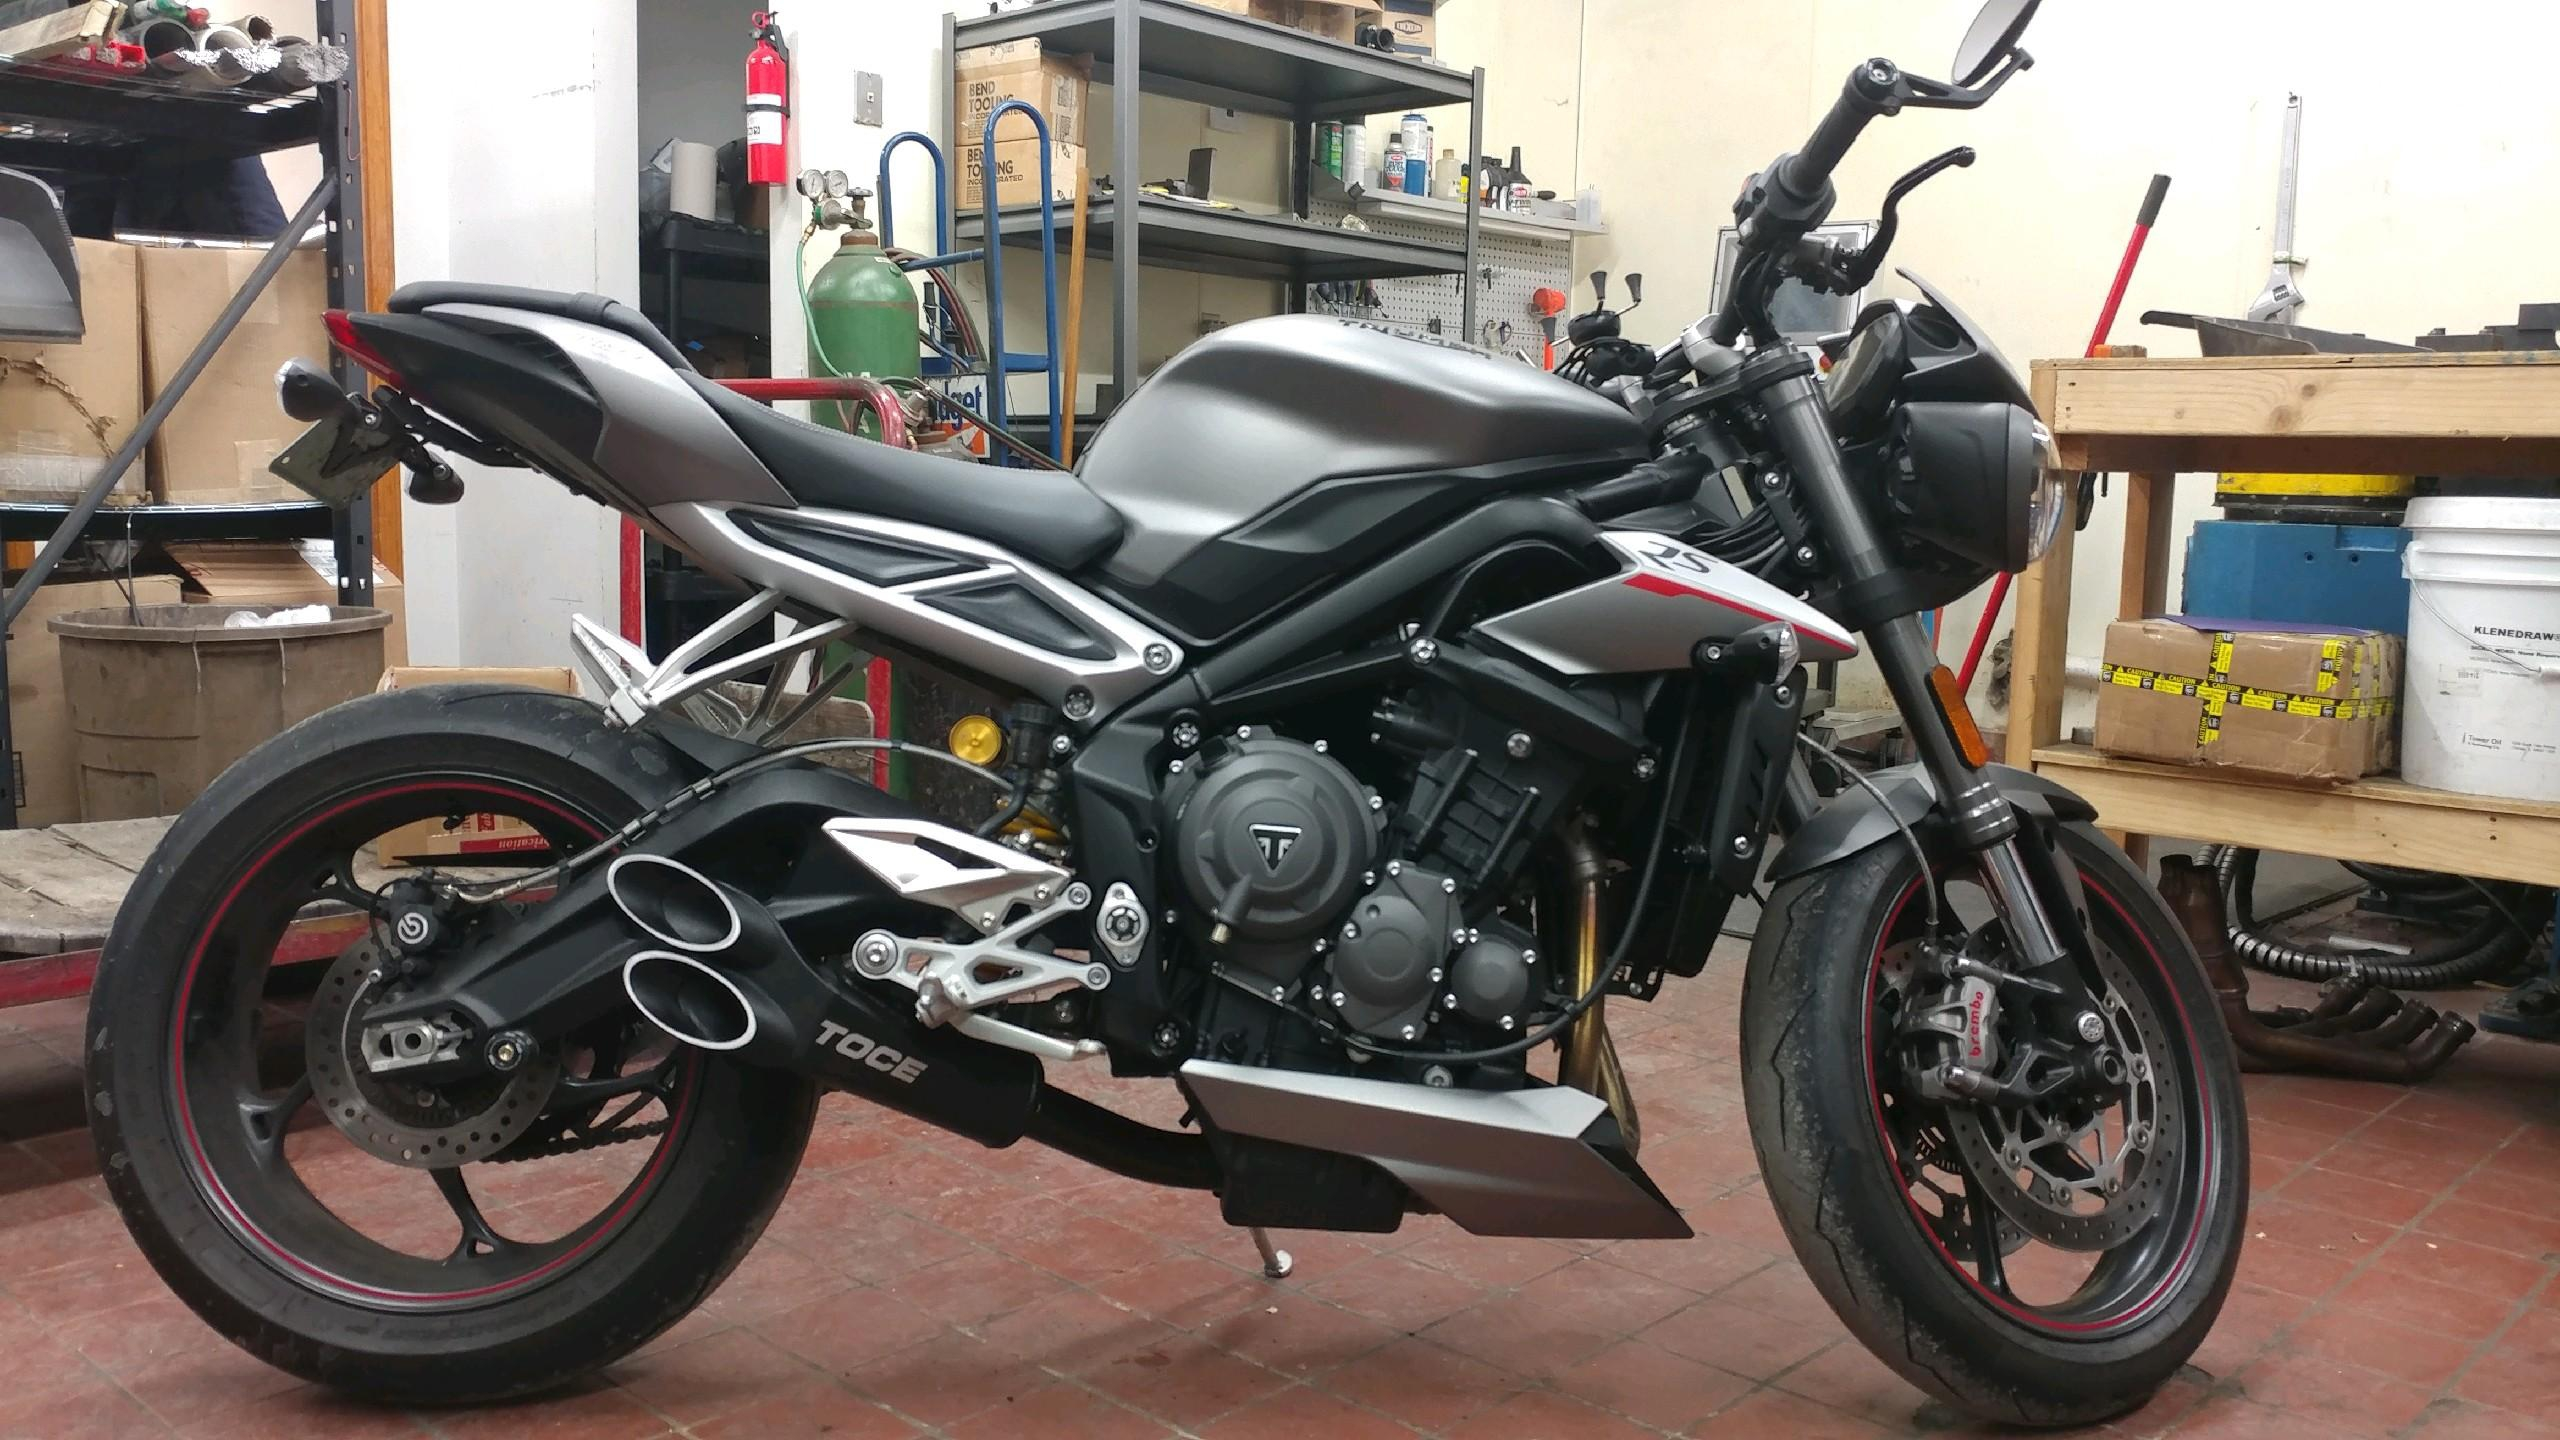 street triple 765 exhaust thread page 29 triumph forum triumph rat motorcycle forums. Black Bedroom Furniture Sets. Home Design Ideas